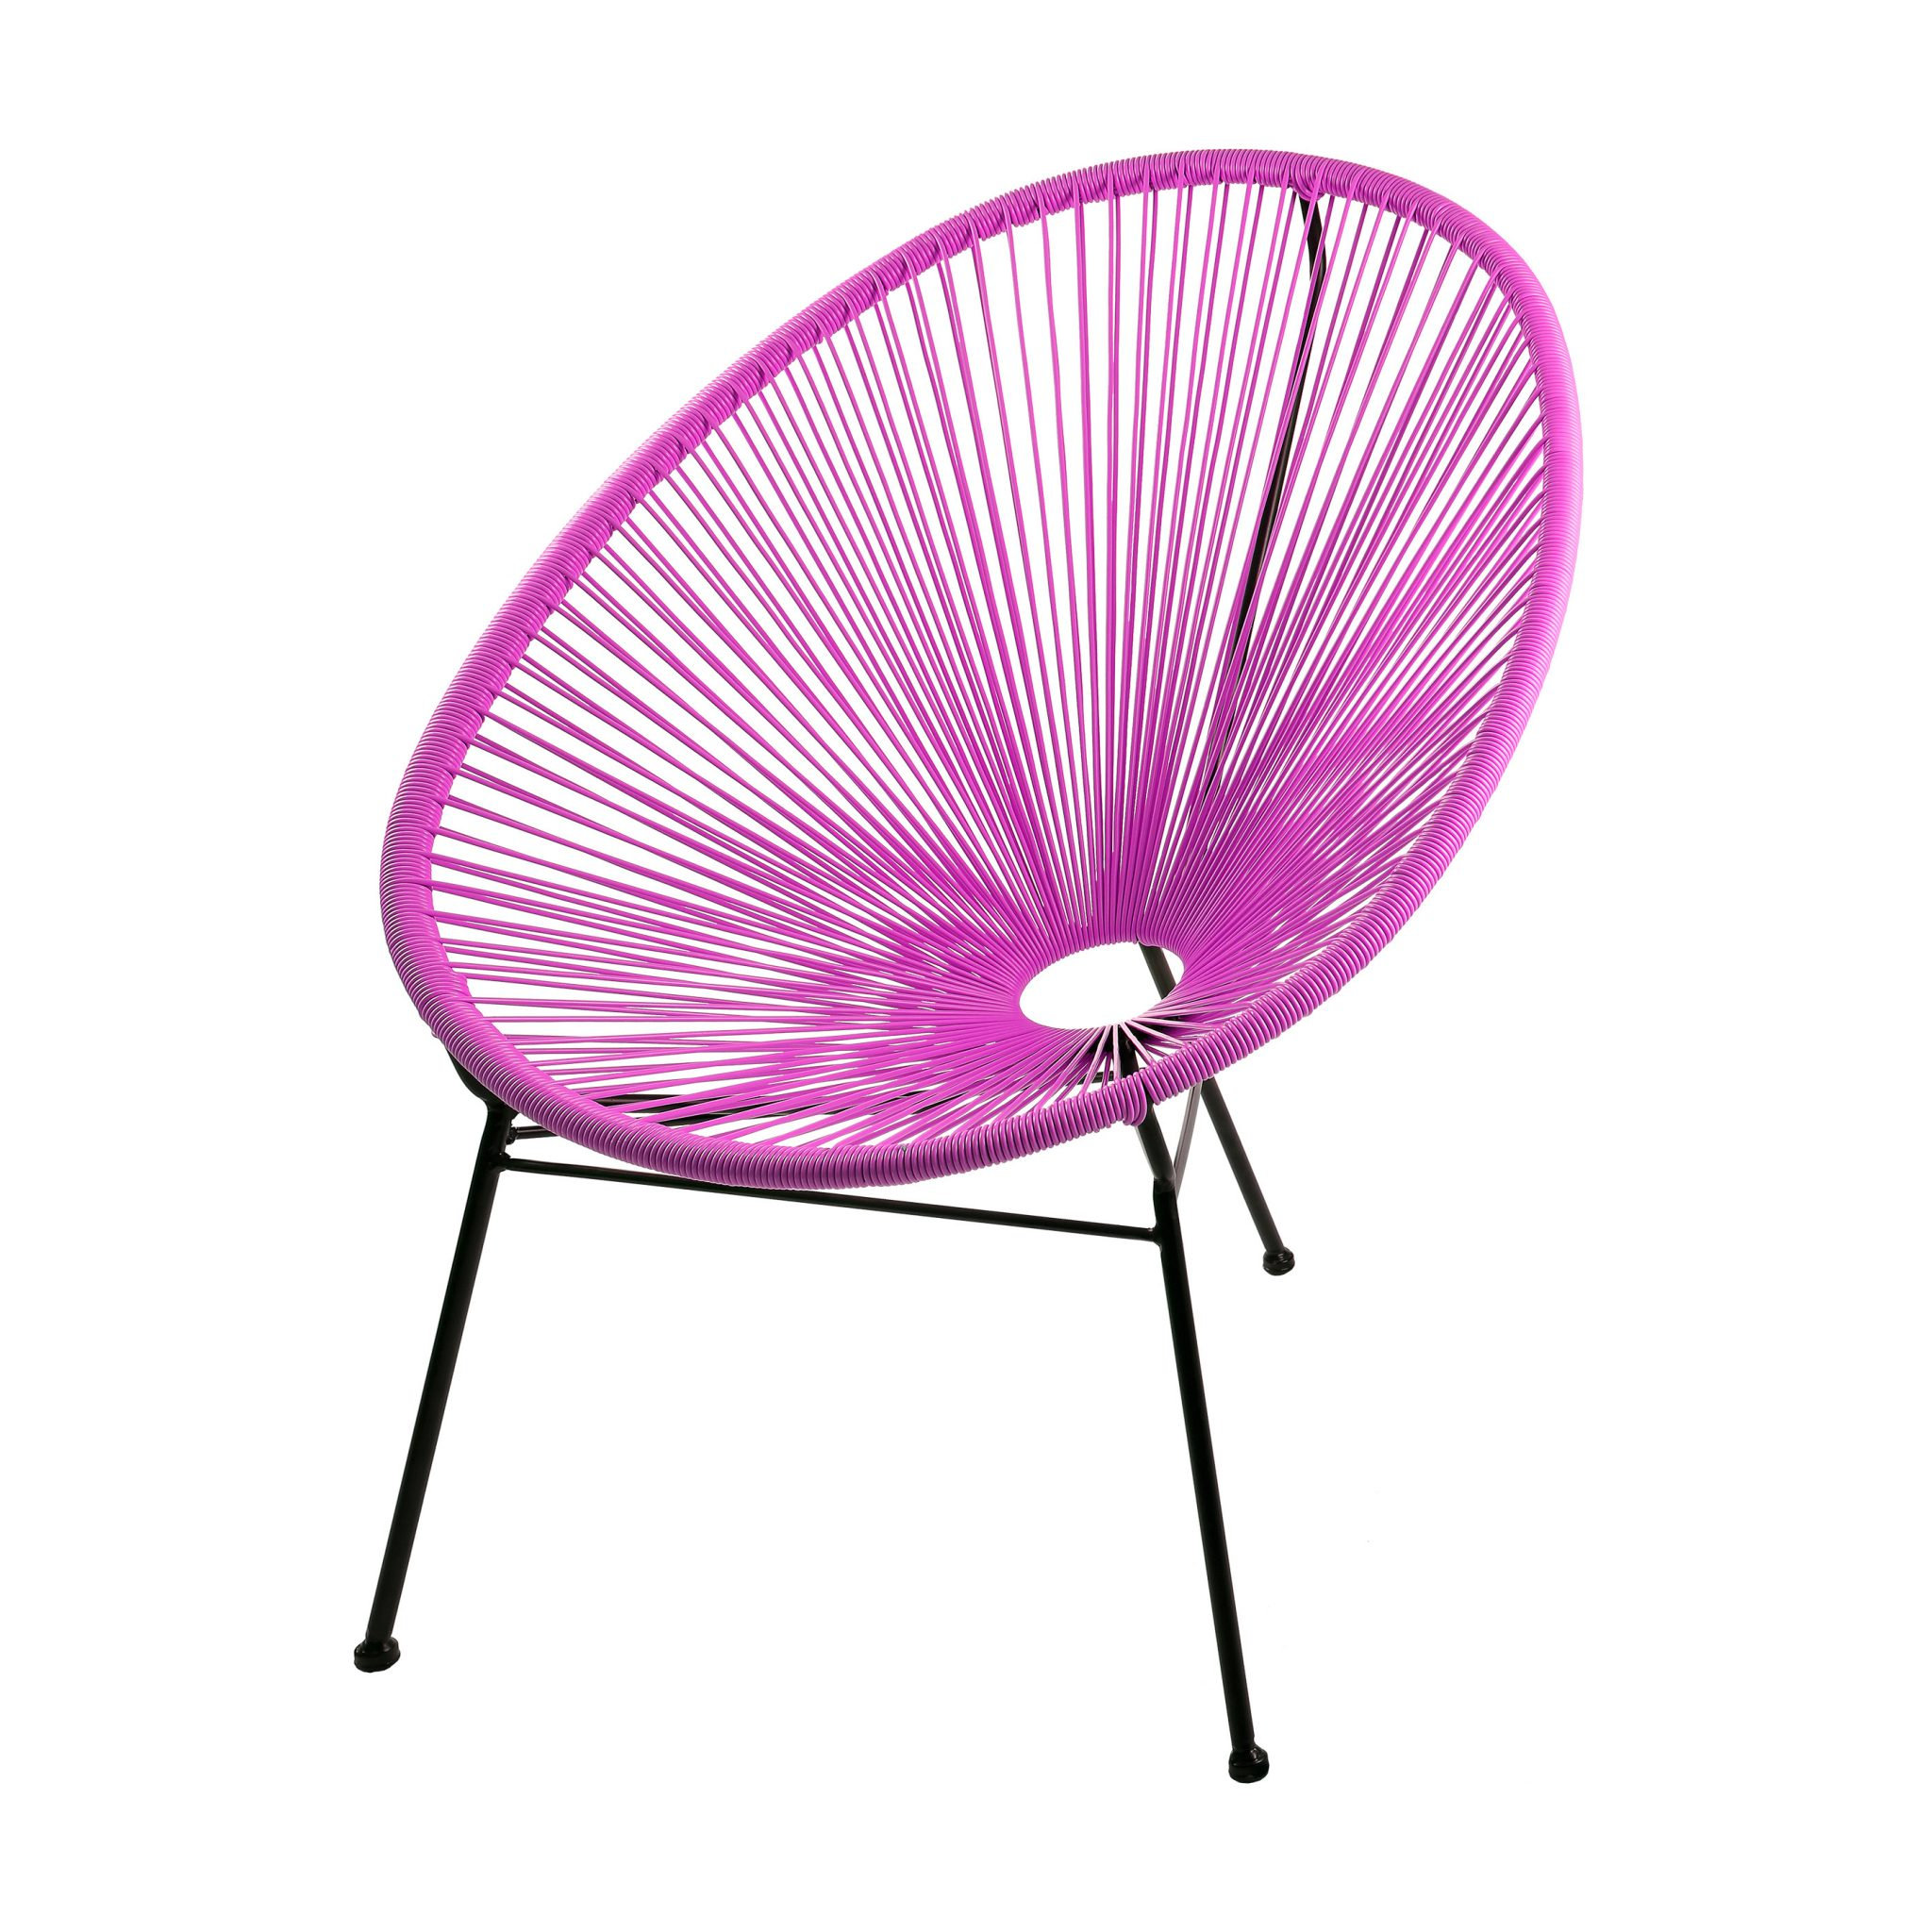 SKASON PULKKO - Acapulco Chair, Design Sessel in pink